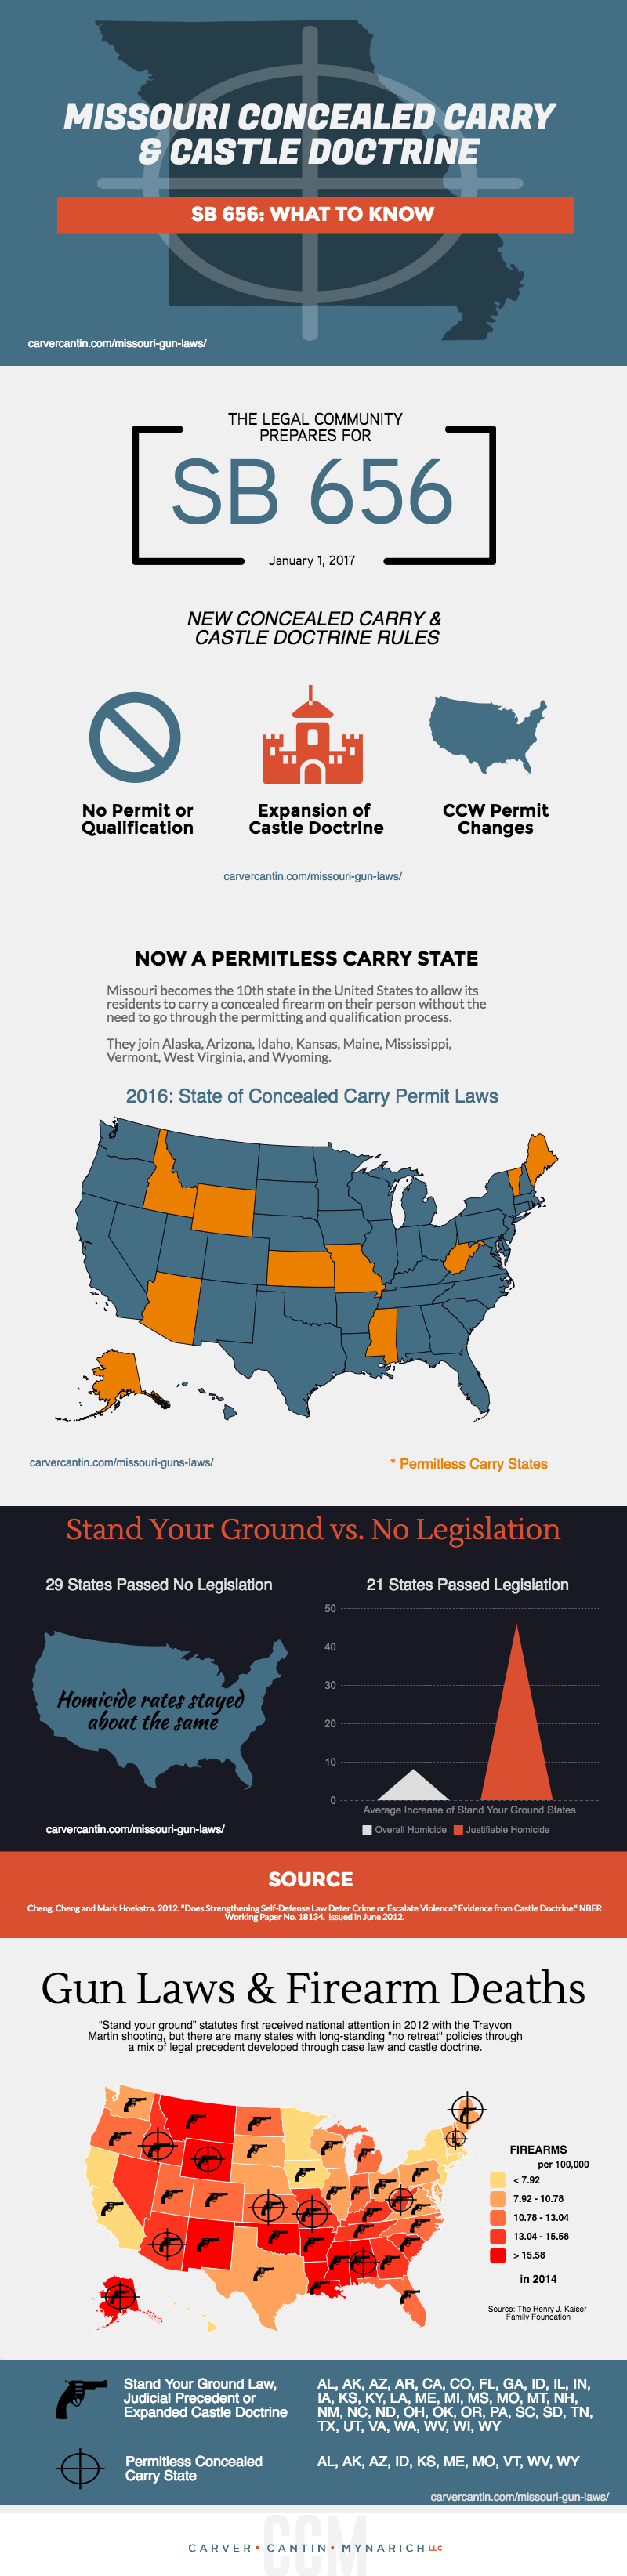 How To Get A Concealed Weapons Permit In Pennsylvania